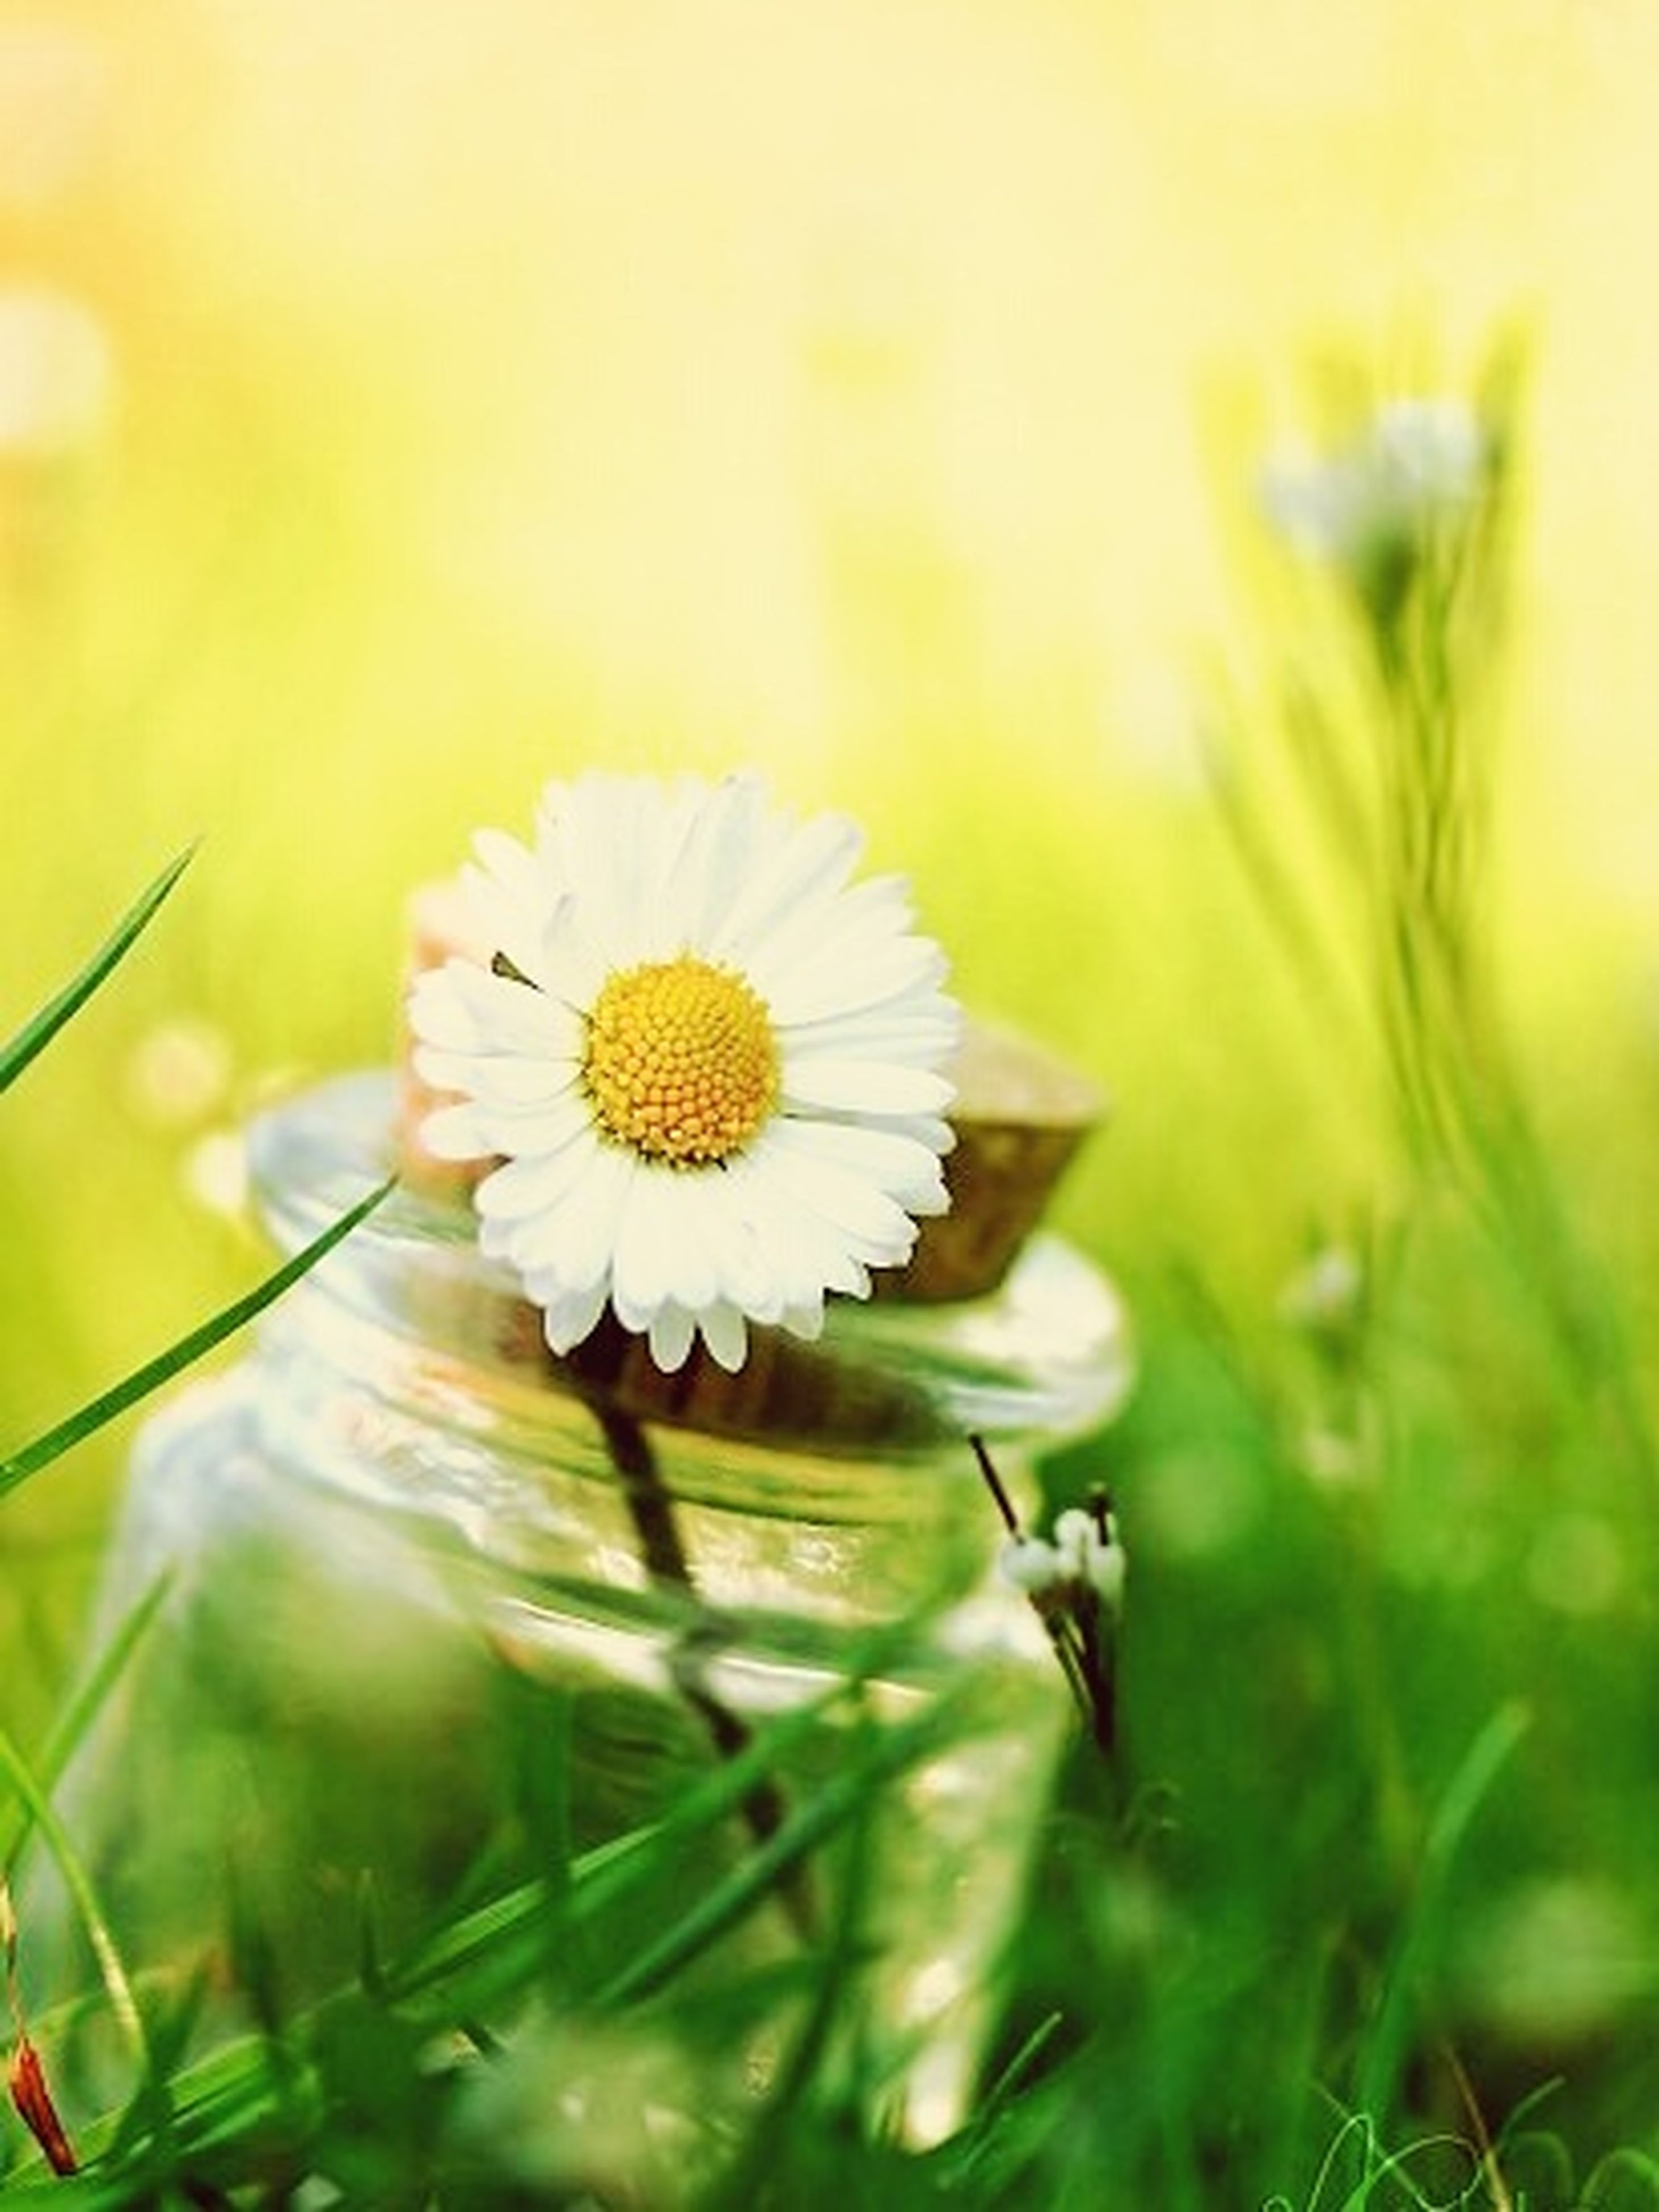 flower, freshness, fragility, flower head, growth, white color, petal, single flower, beauty in nature, close-up, daisy, focus on foreground, nature, pollen, dandelion, plant, blooming, white, stem, selective focus